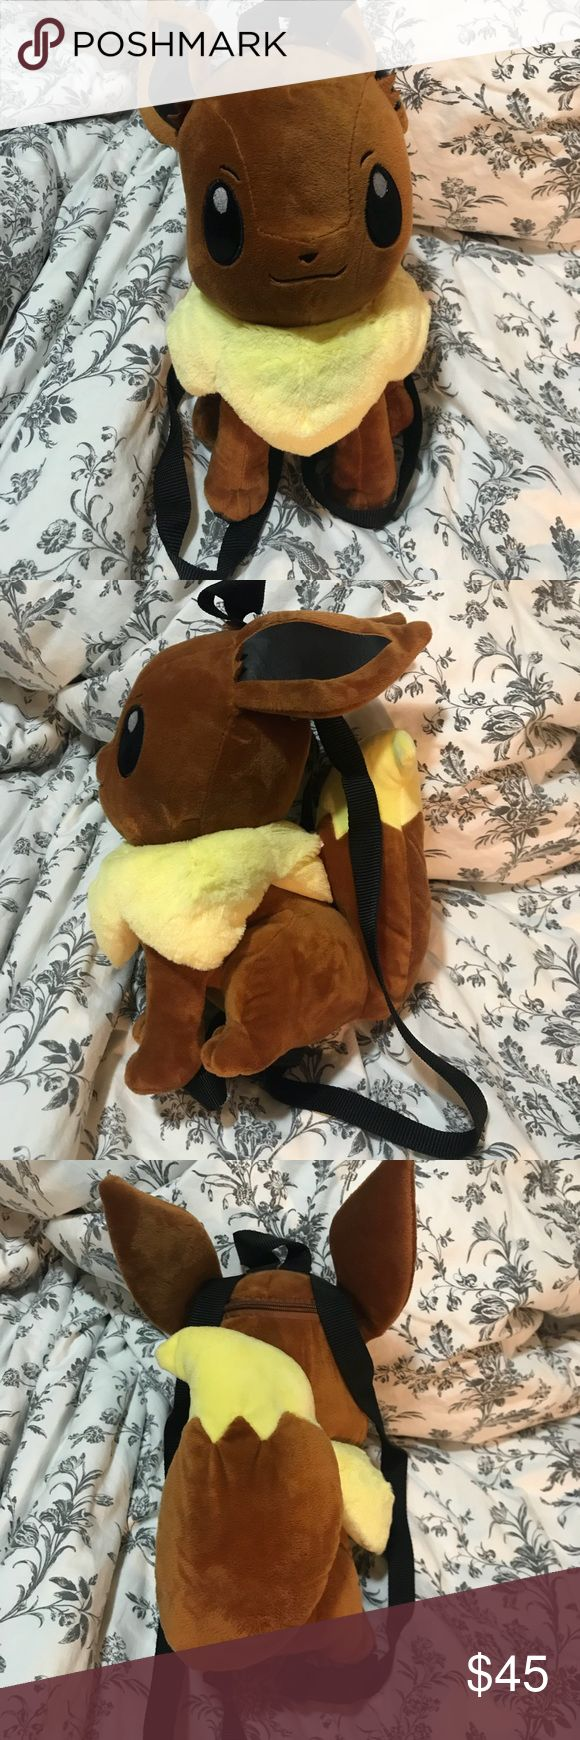 Pokemon backpack Eevee backpack. There's a tiny pocket in the back that can at most carry keys. New never used. ✖️NO TRADES✖️ Pokemon Bags Backpacks